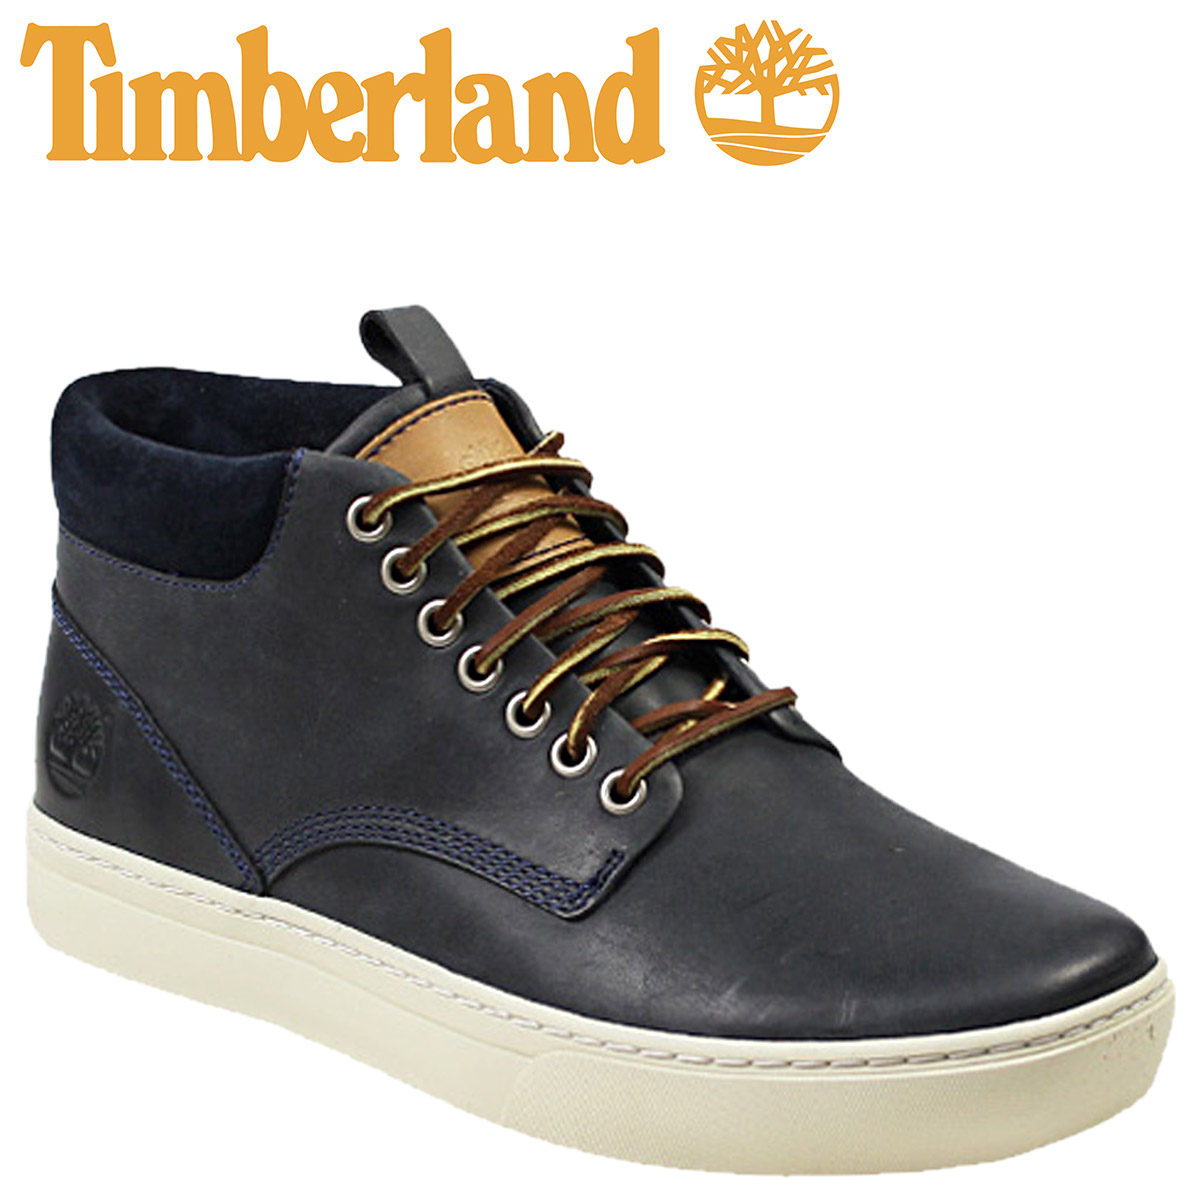 SOLD OUT  Timberland Timberland Earthkeepers adventure cupsole chukka  rolltop  Navy  EARTHKEEPERS ADVENTURE CUPSOLE CHUKKA leather men s 5917R   regular  265a2d922